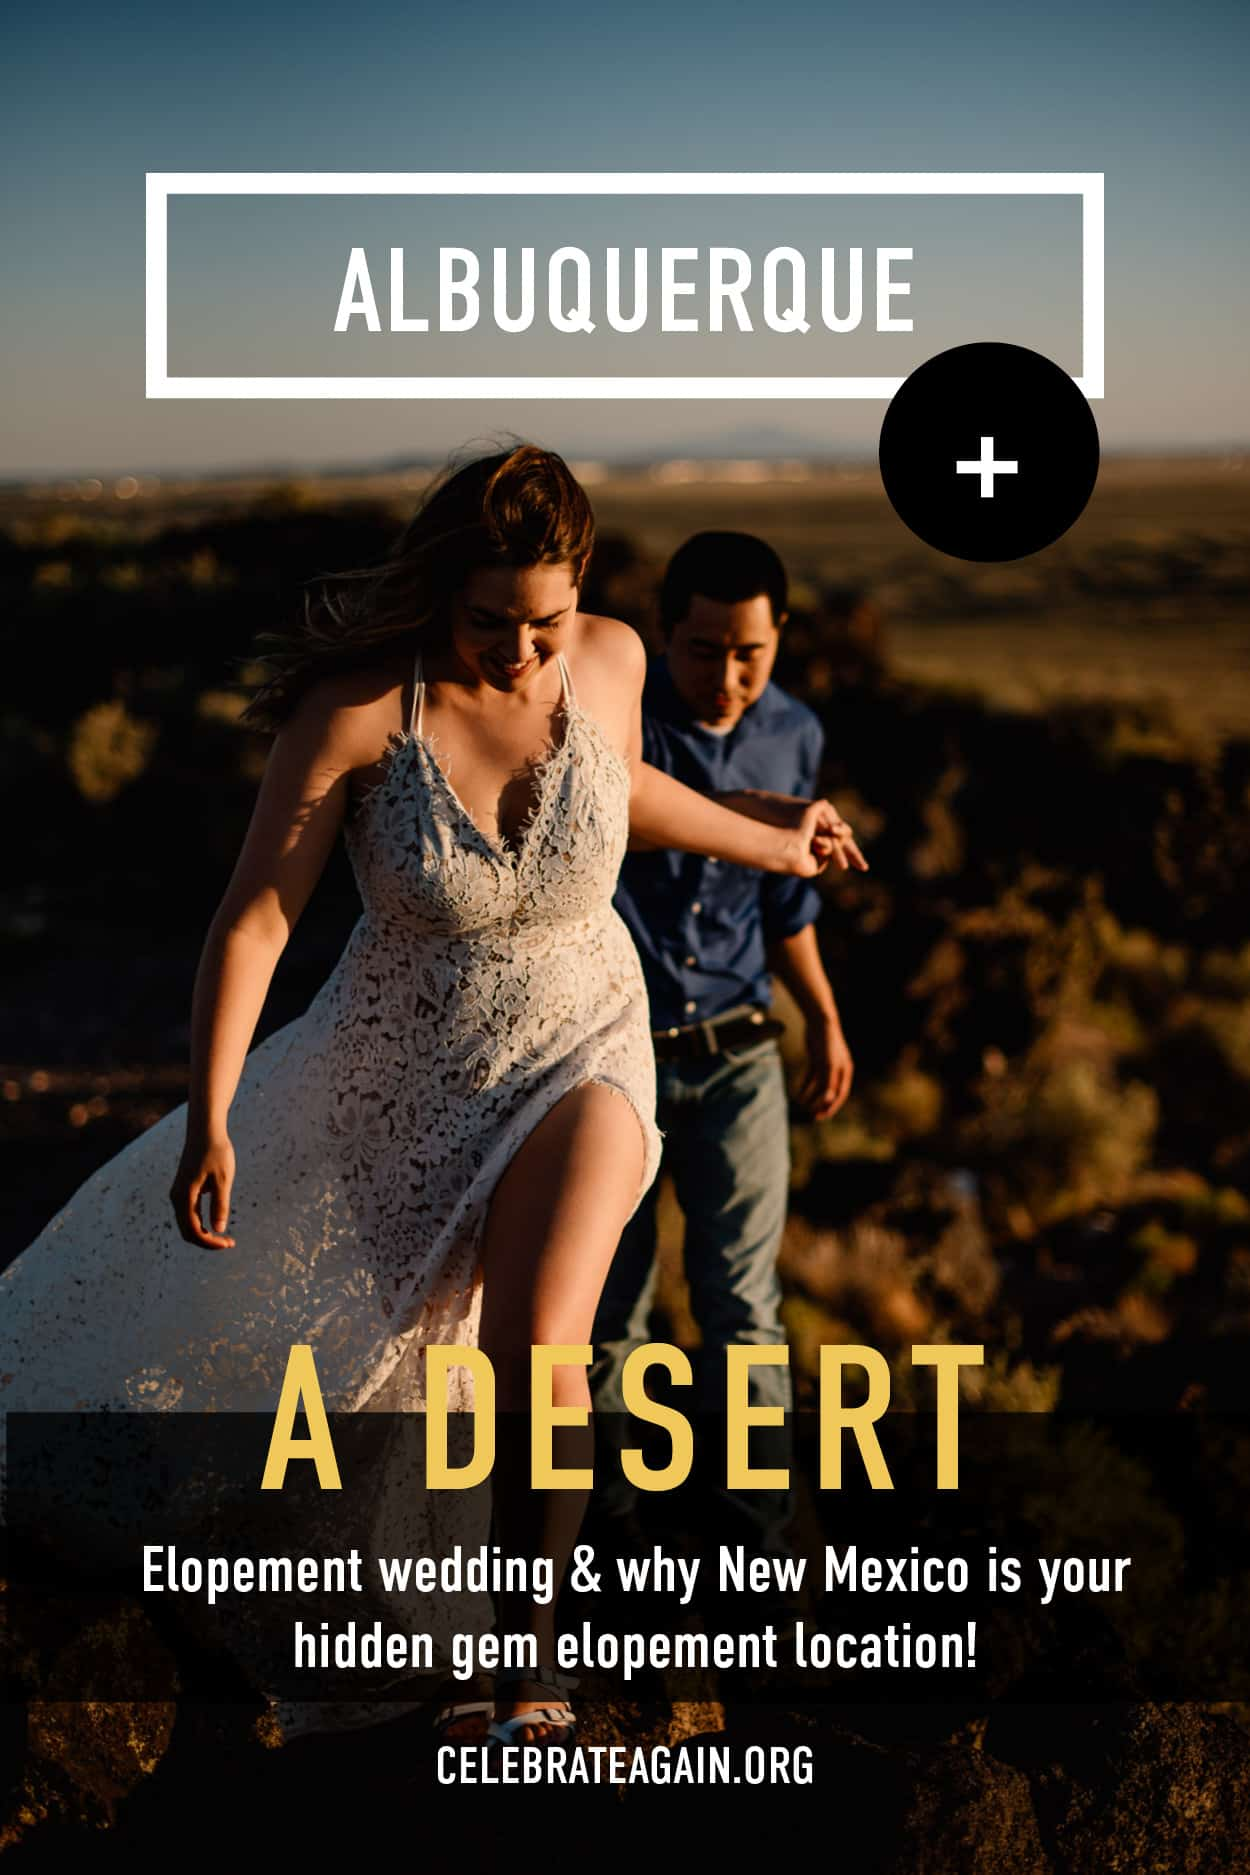 """albuquerque + a desert elopement wedding & why New Mexico is your hidden gem elopement location!"" photo of a couple walking up a hill in a desert sunset setting"